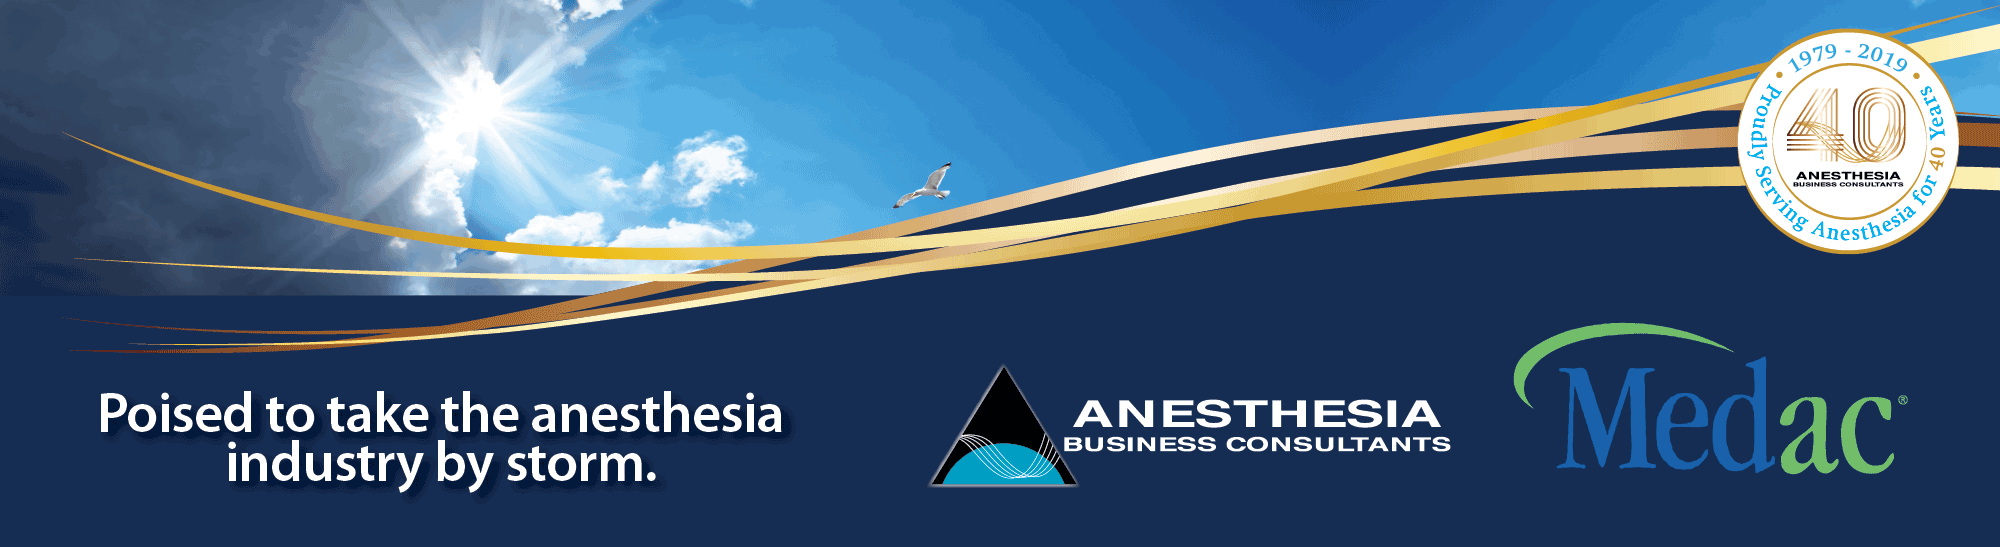 Anesthesia Billing & BPO Since 1979 | Anesthesia Business